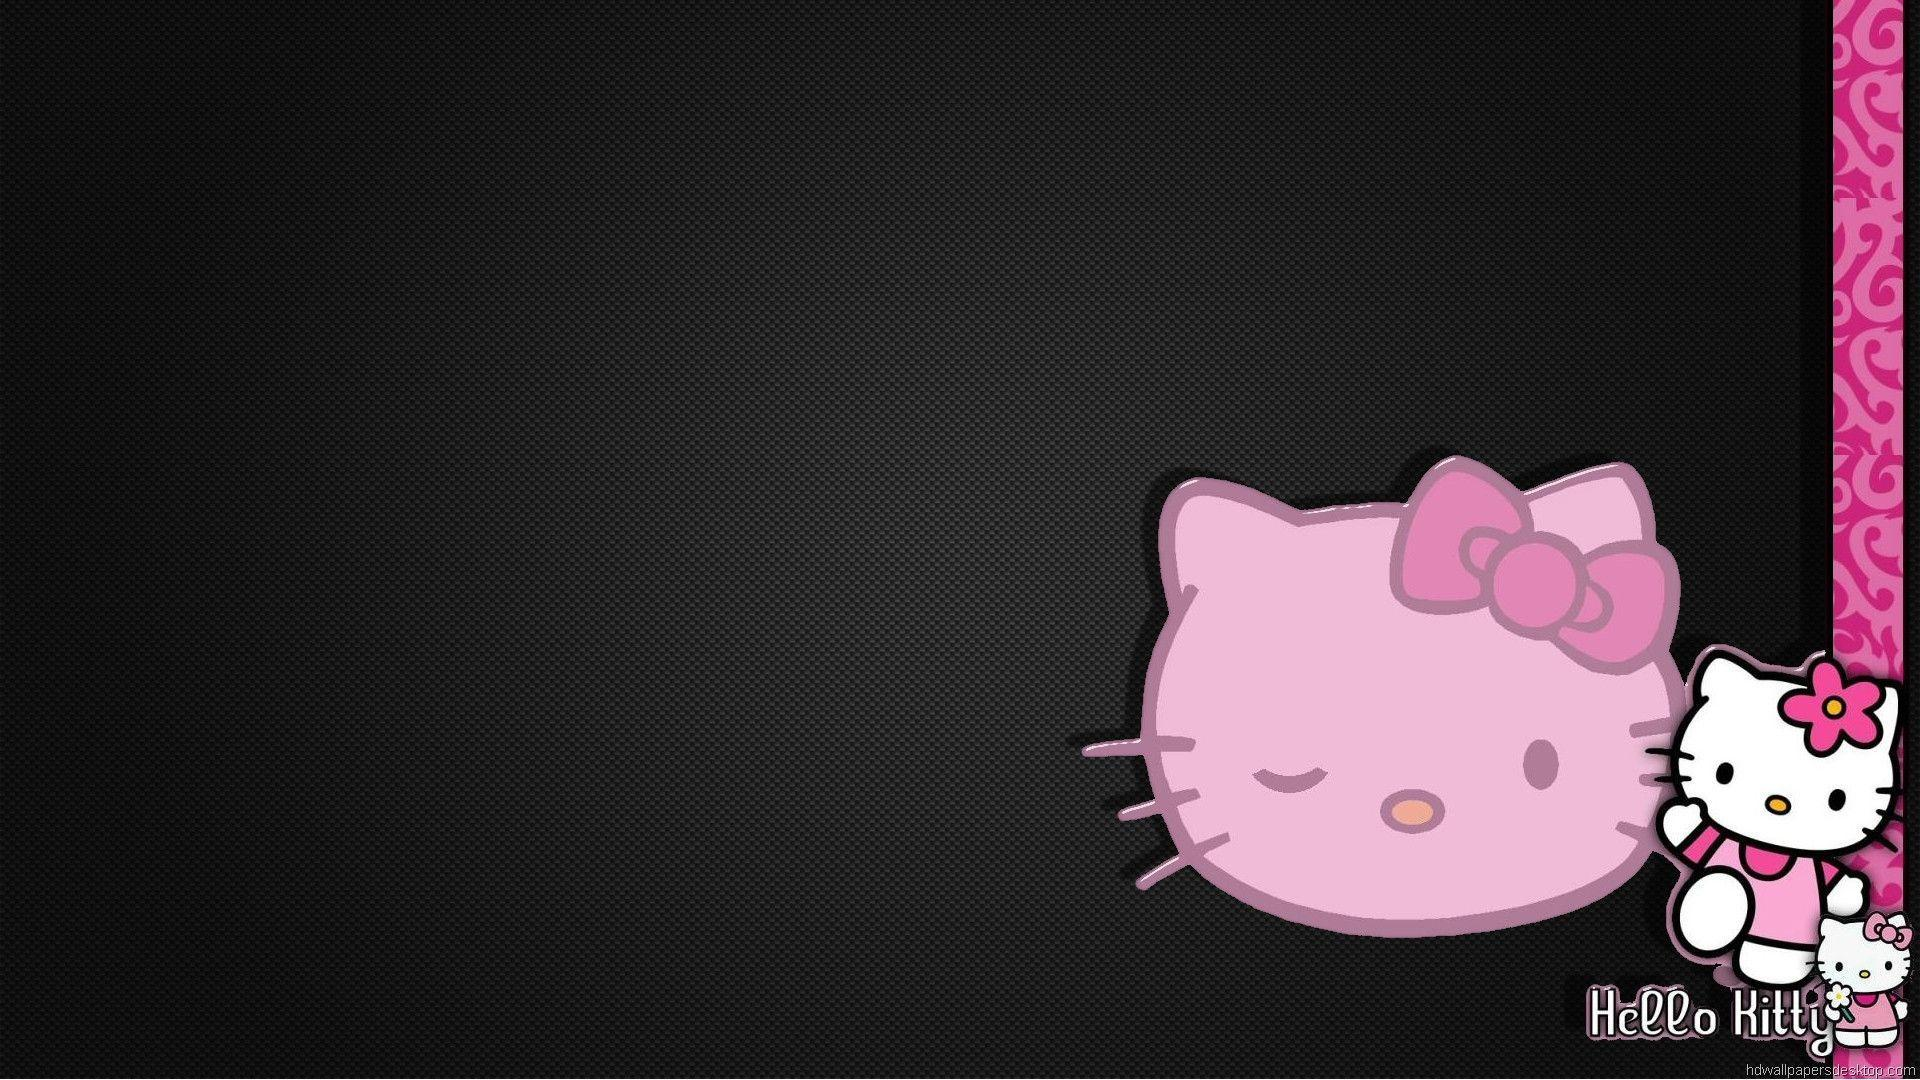 Black And Pink Hello Kitty Wallpapers - Wallpaper Cave